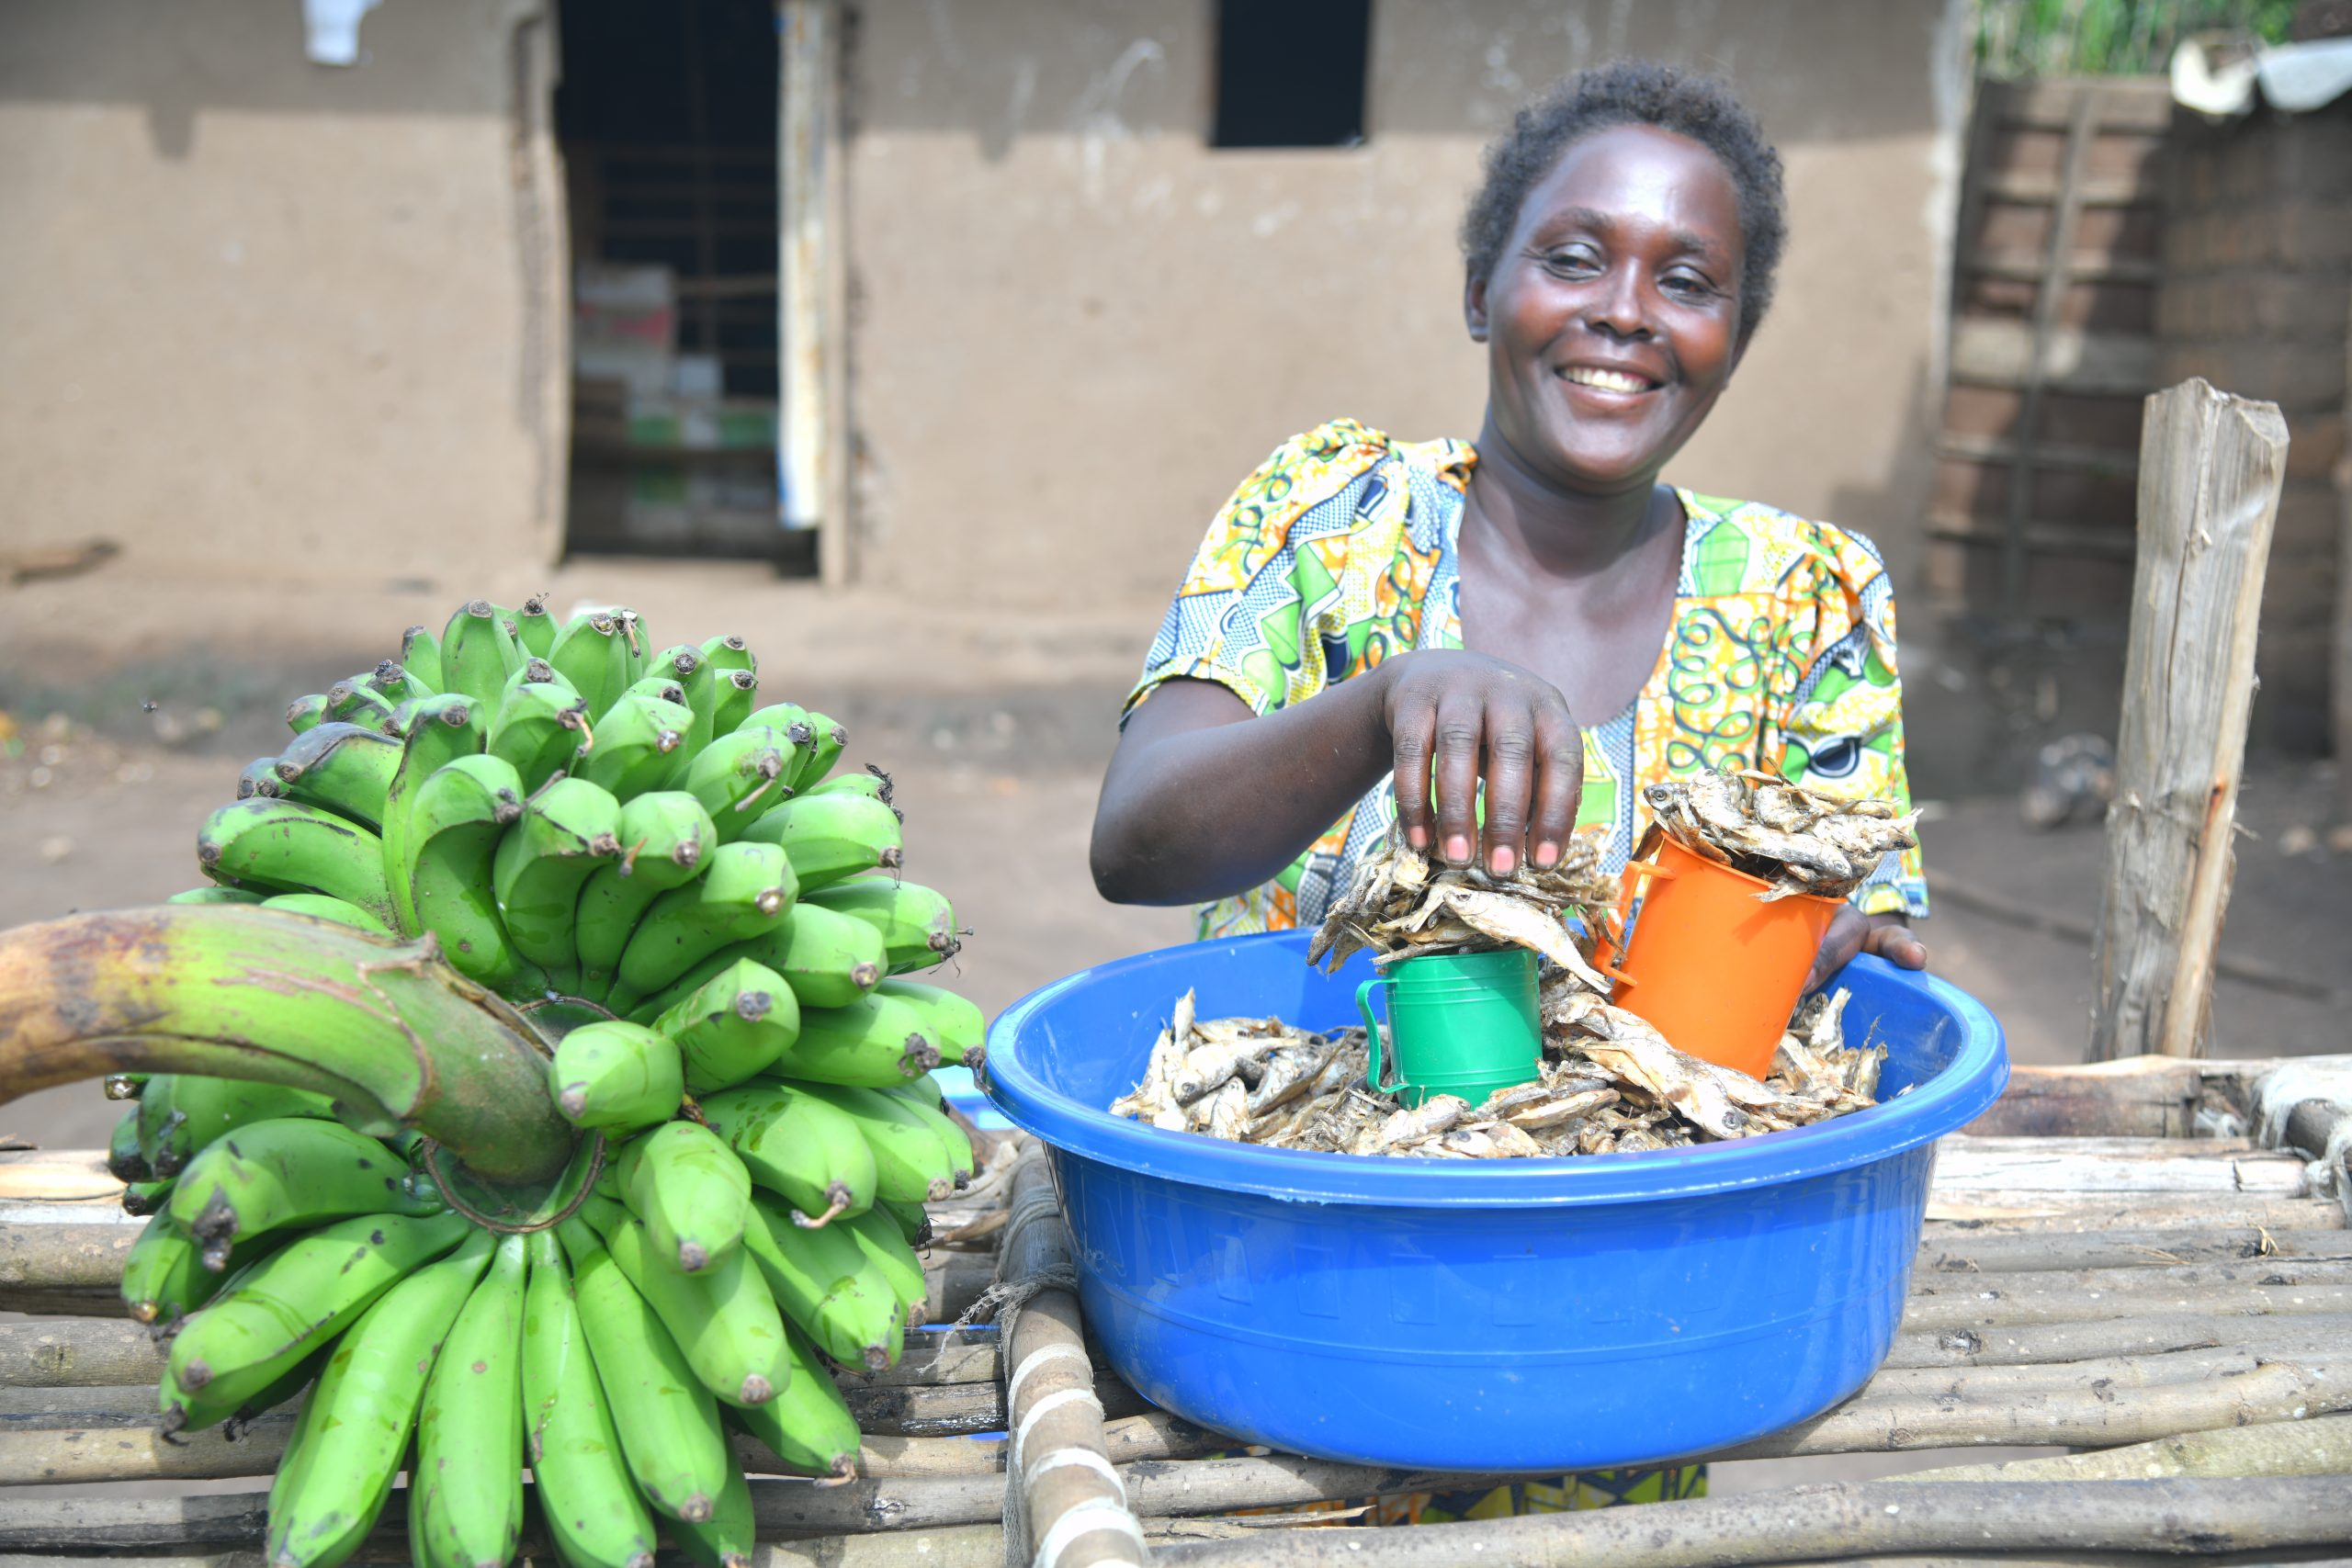 Petronia displays some of the food she produces and sells in the refugee settlement during the COVID-19 pandemic